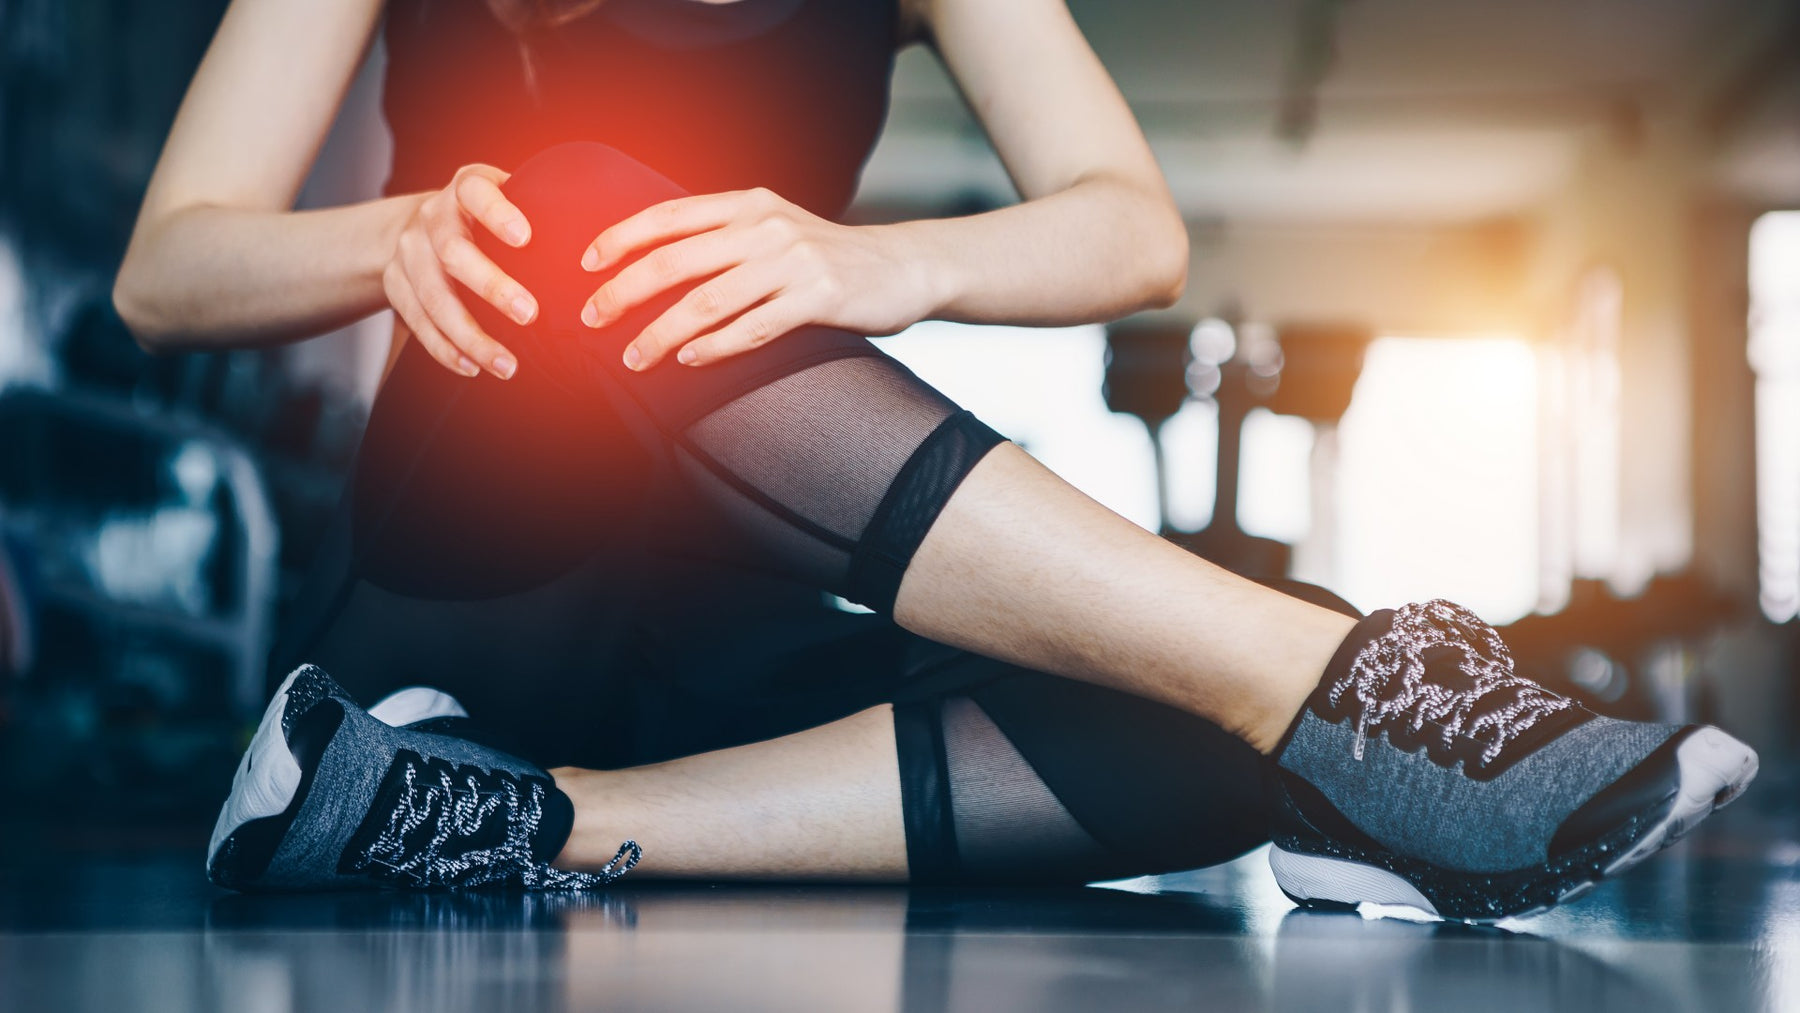 8 Tips to Avoid Gym Injuries in 2018